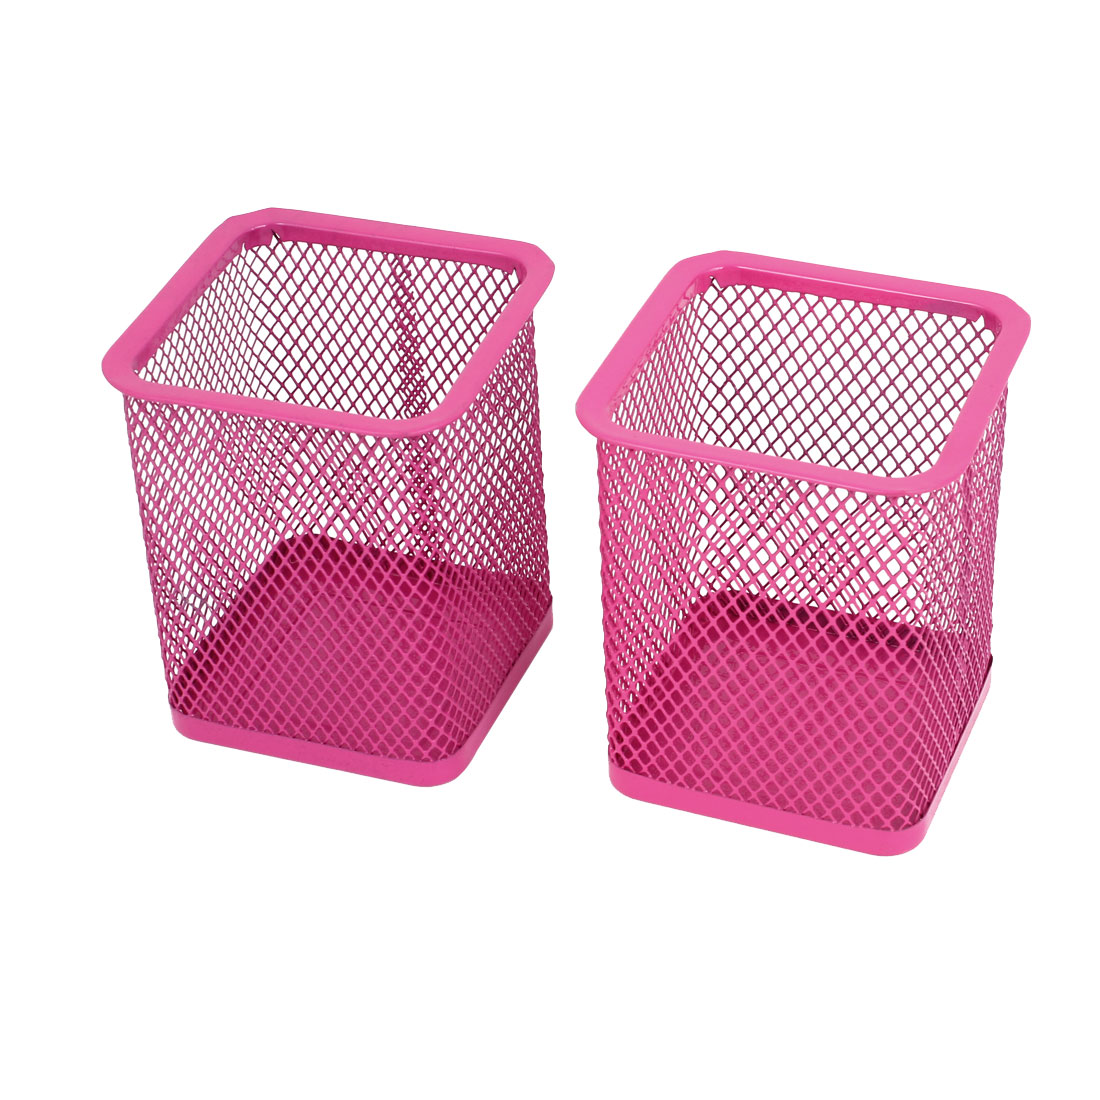 2 Pcs Pink Metal Rectangle Shaped Mesh Pen Pencil Holder Organizer